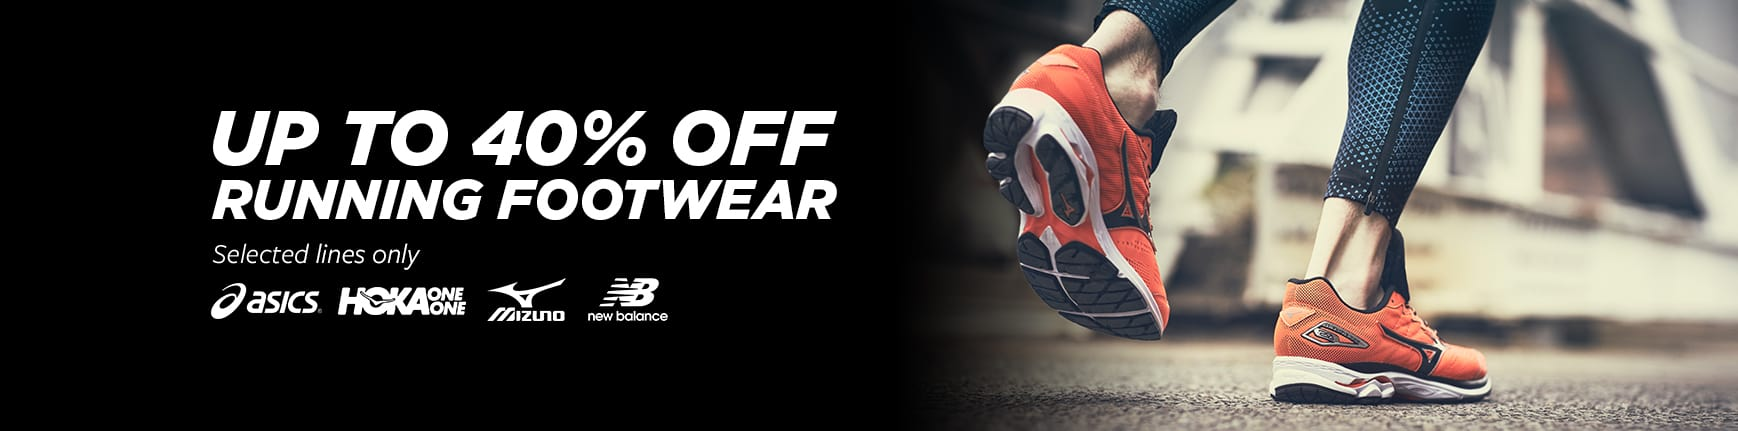 Millet Sports: up to 40% off running footwear